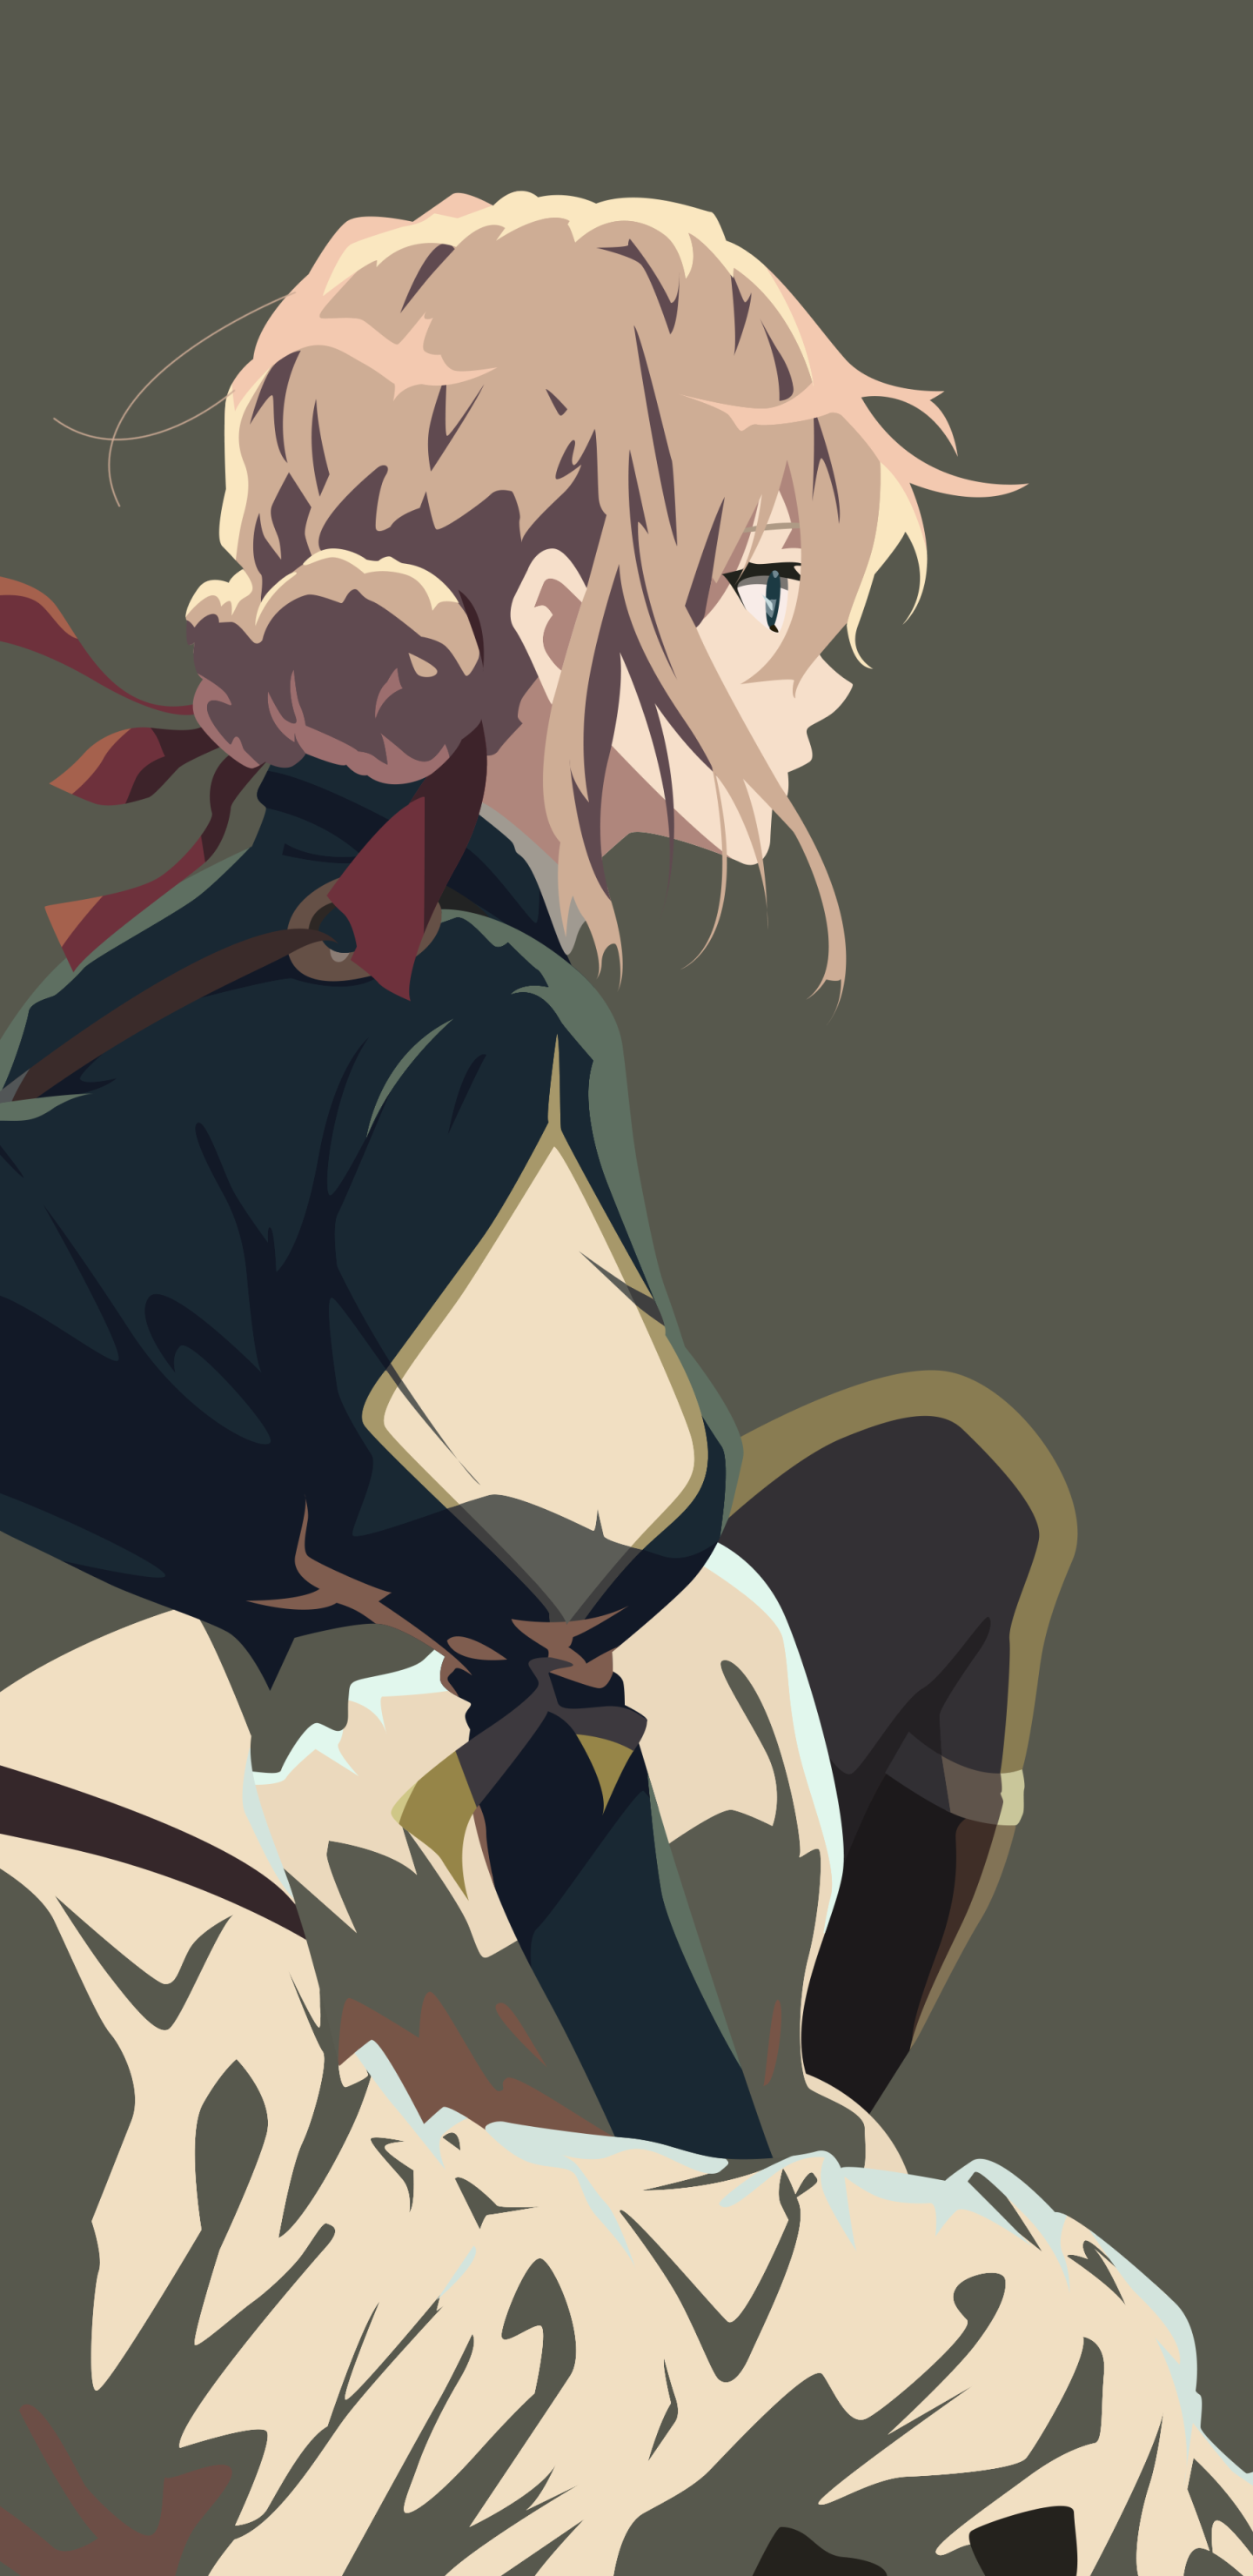 Download this Wallpaper Anime/Violet Evergarden (1440x2960